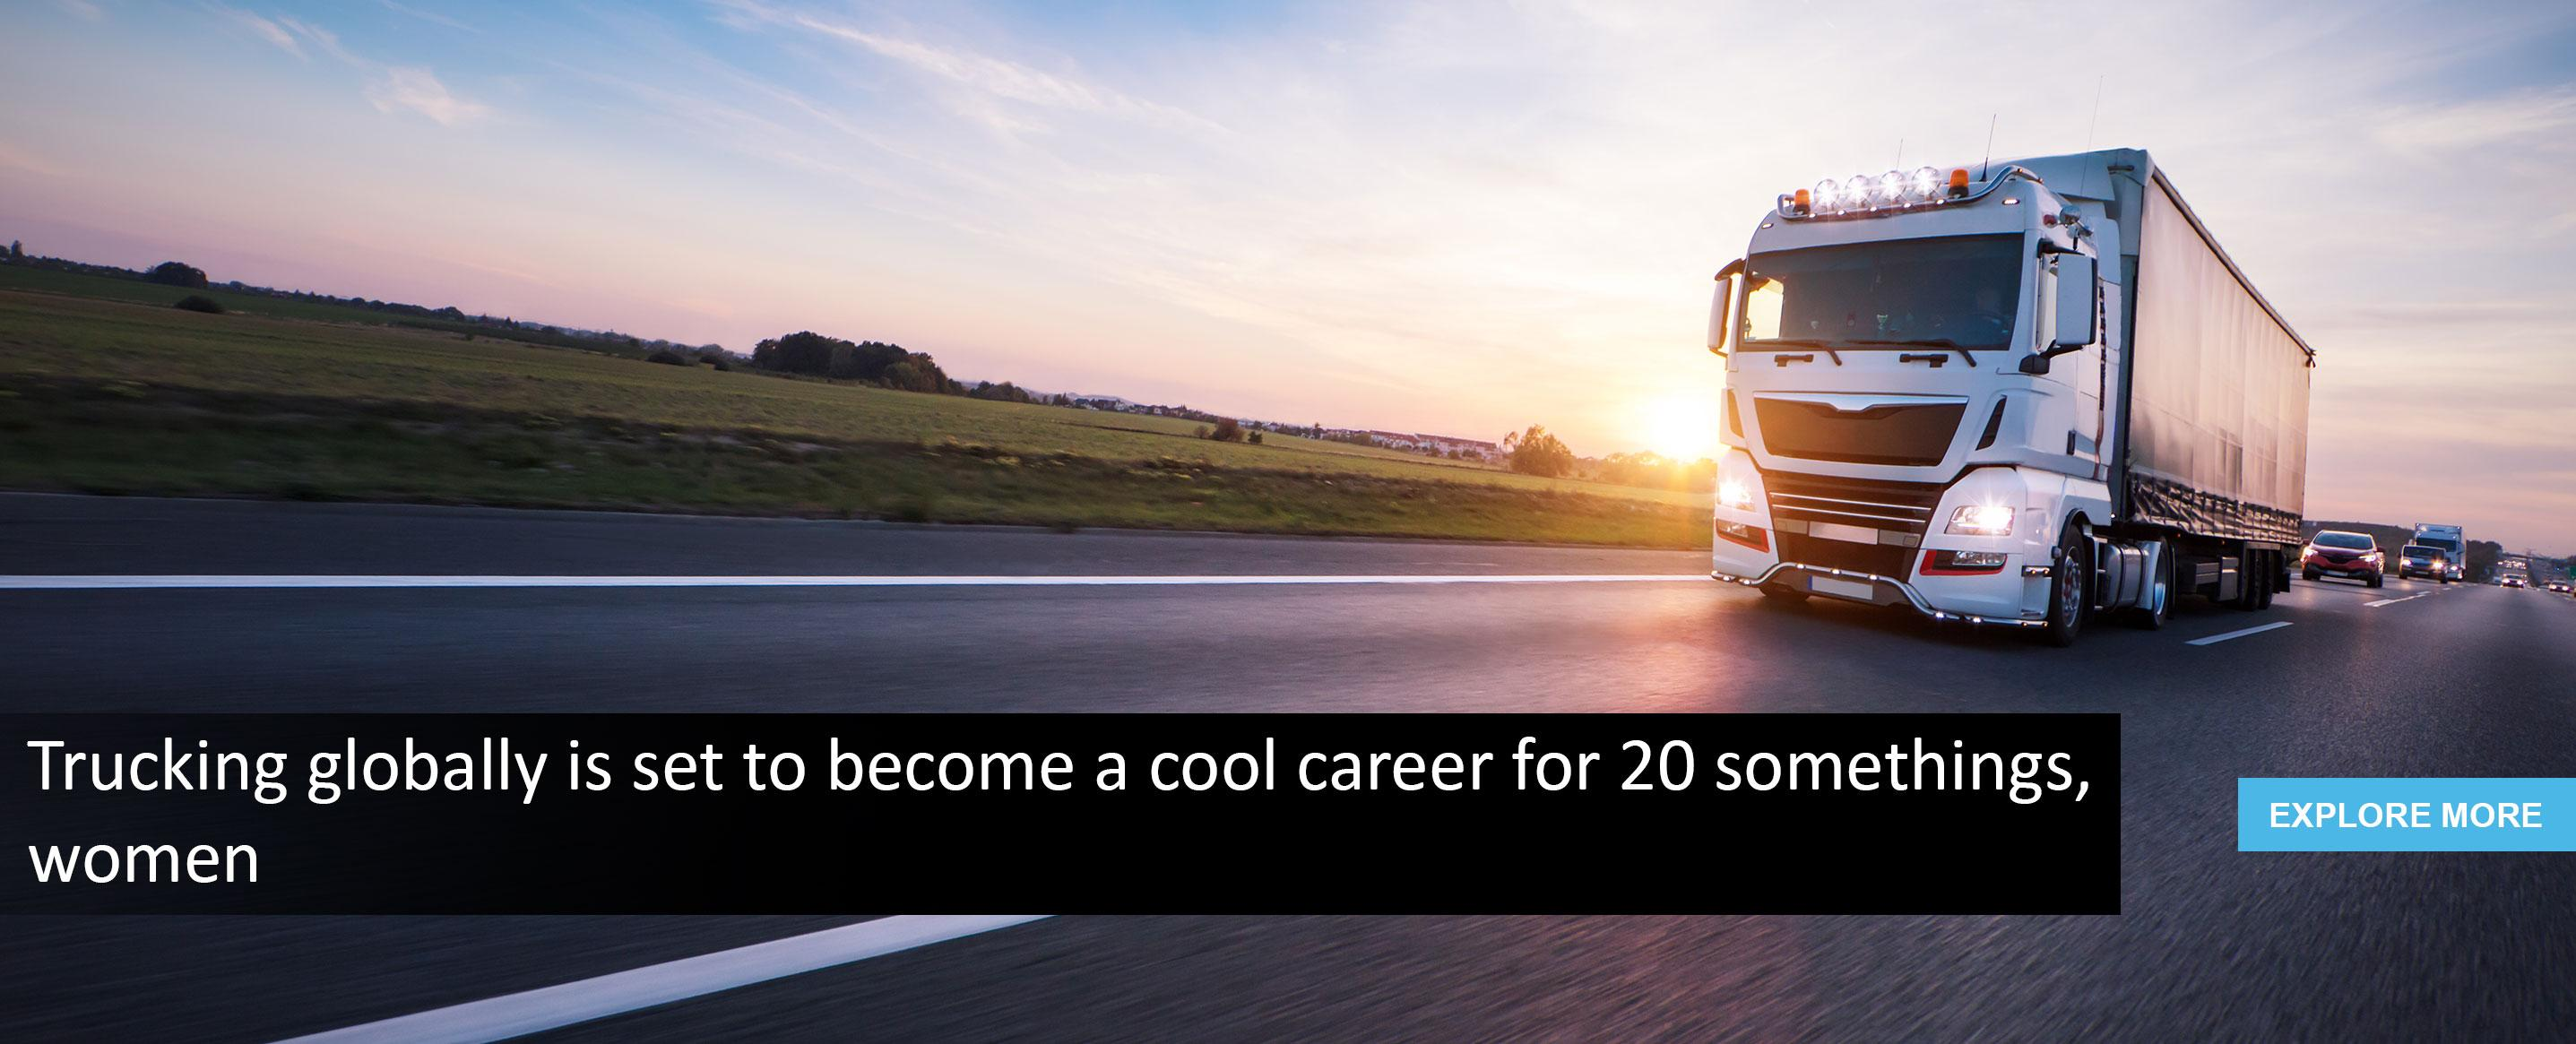 Trucking globally is set to become a cool career for 20 somethings, women